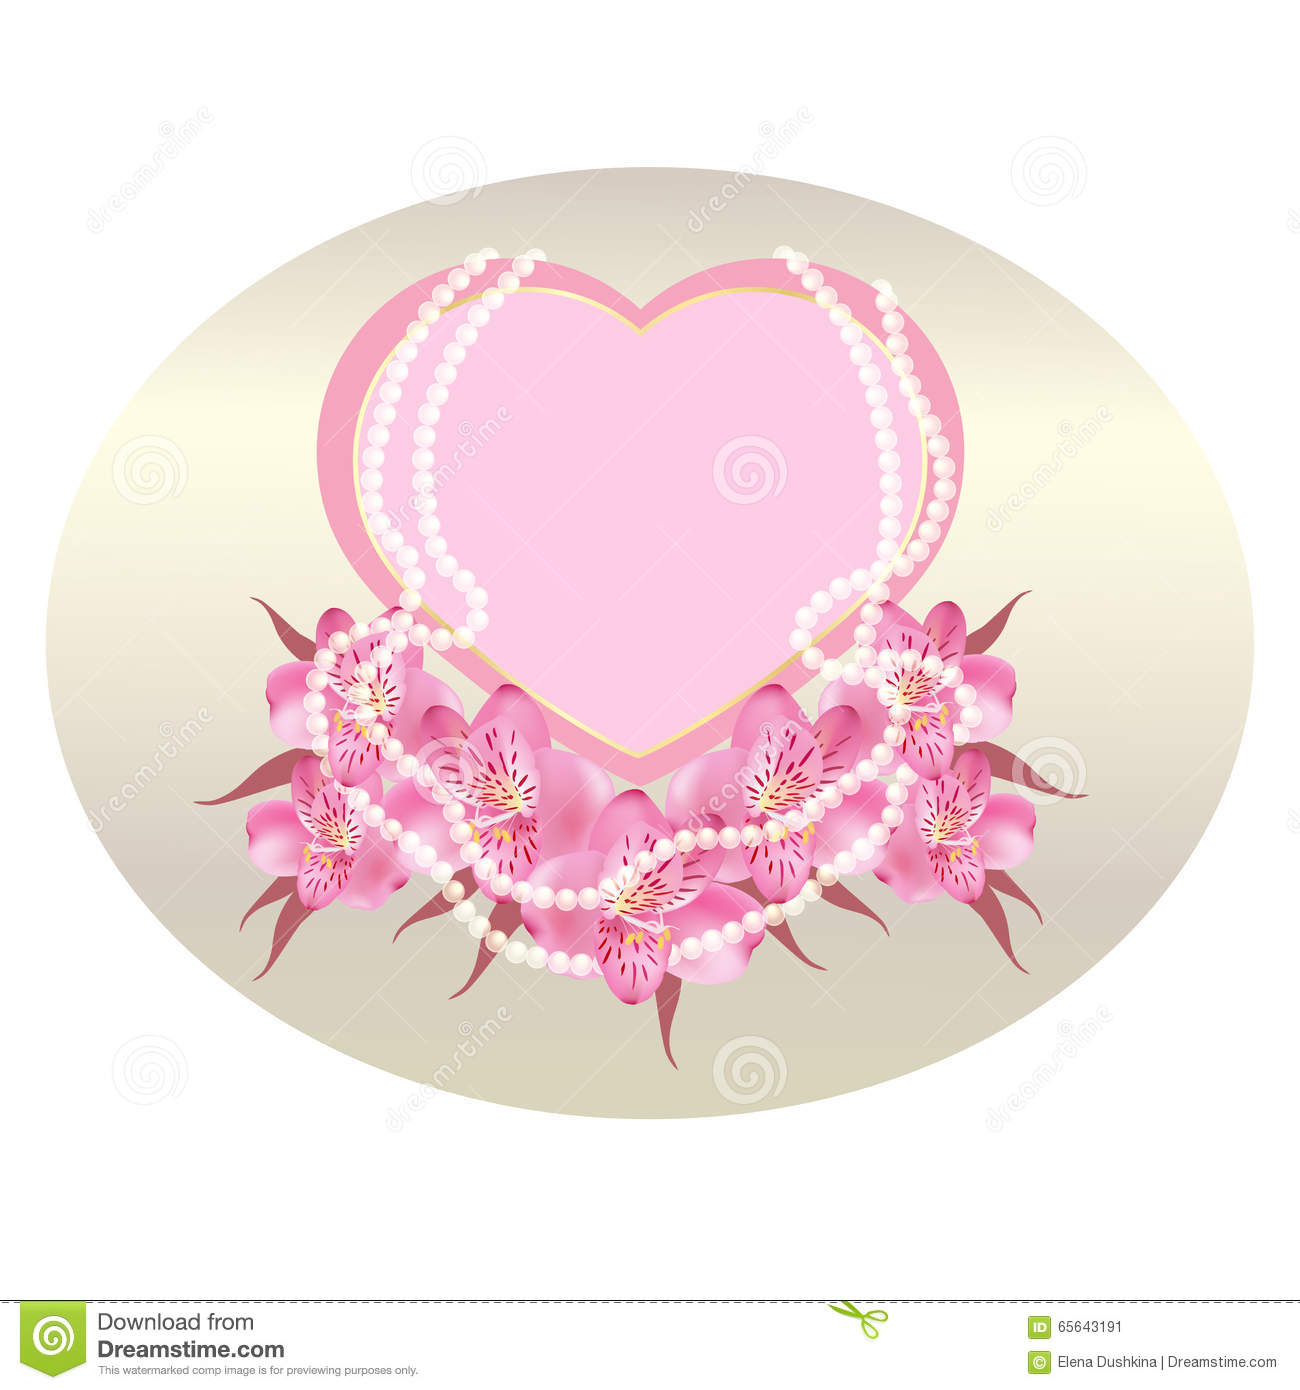 Romantic Background For Text With Hearts Pink Flowers And Beads